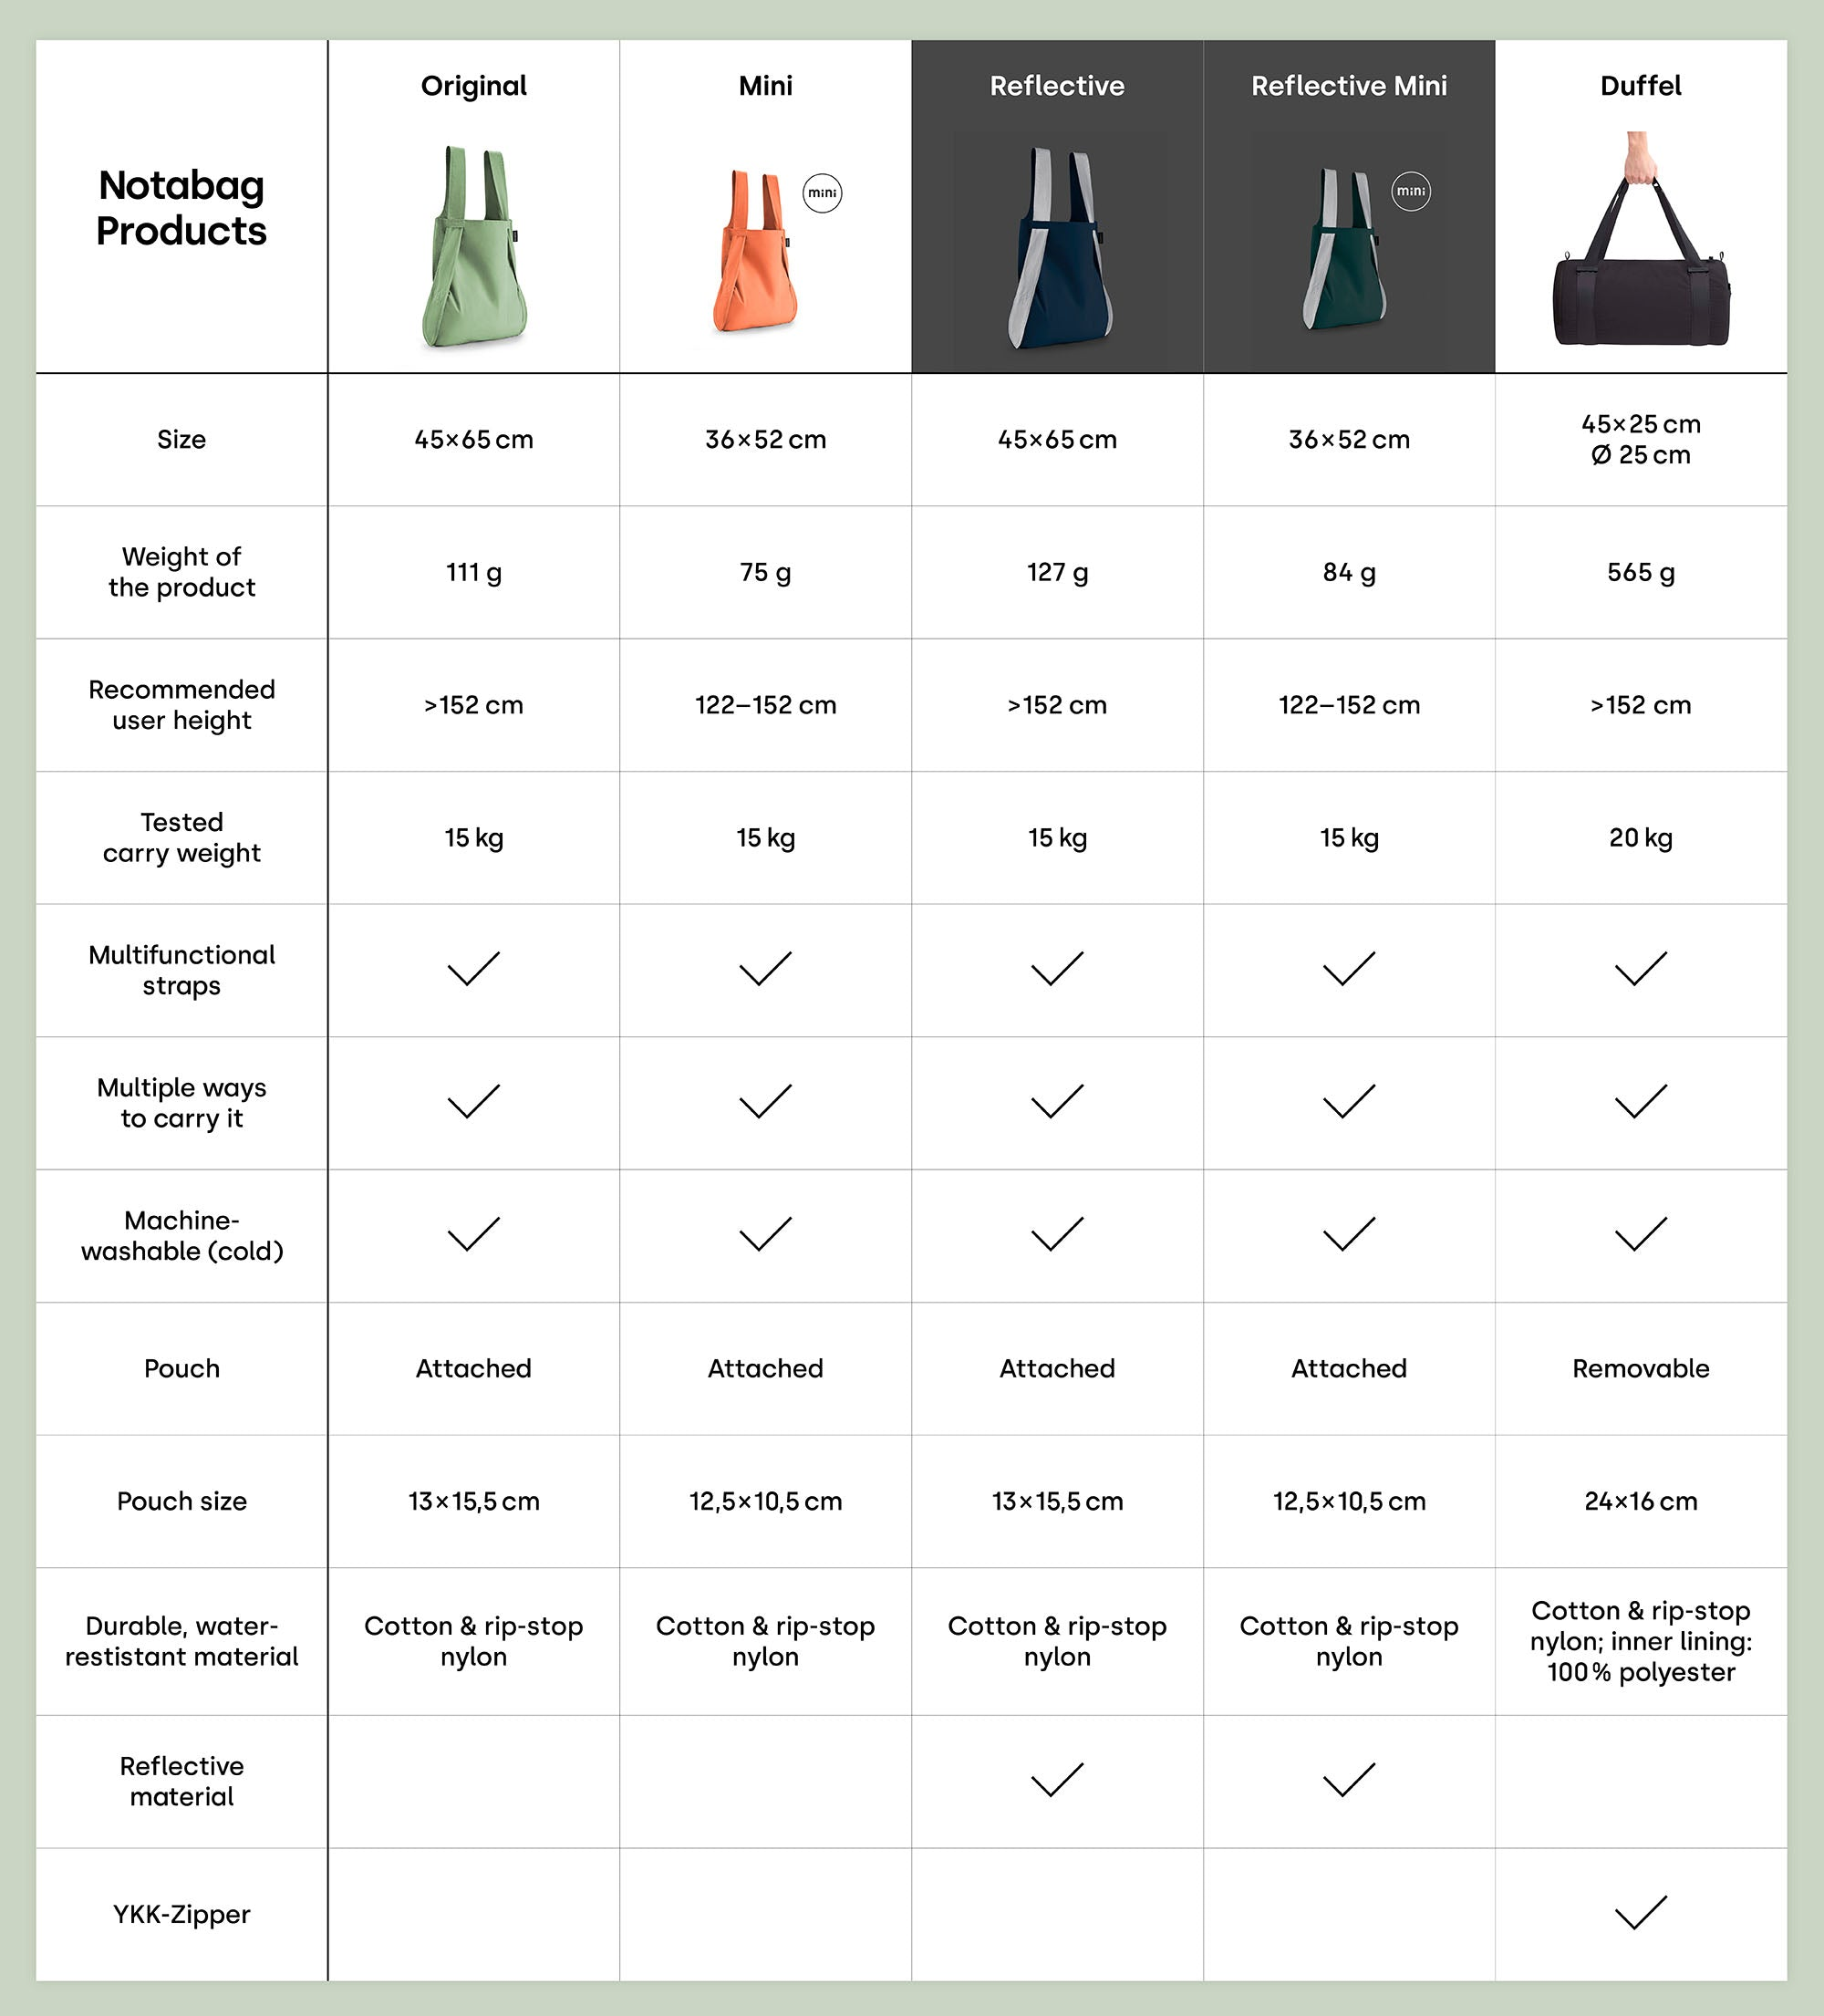 Notabag products overview